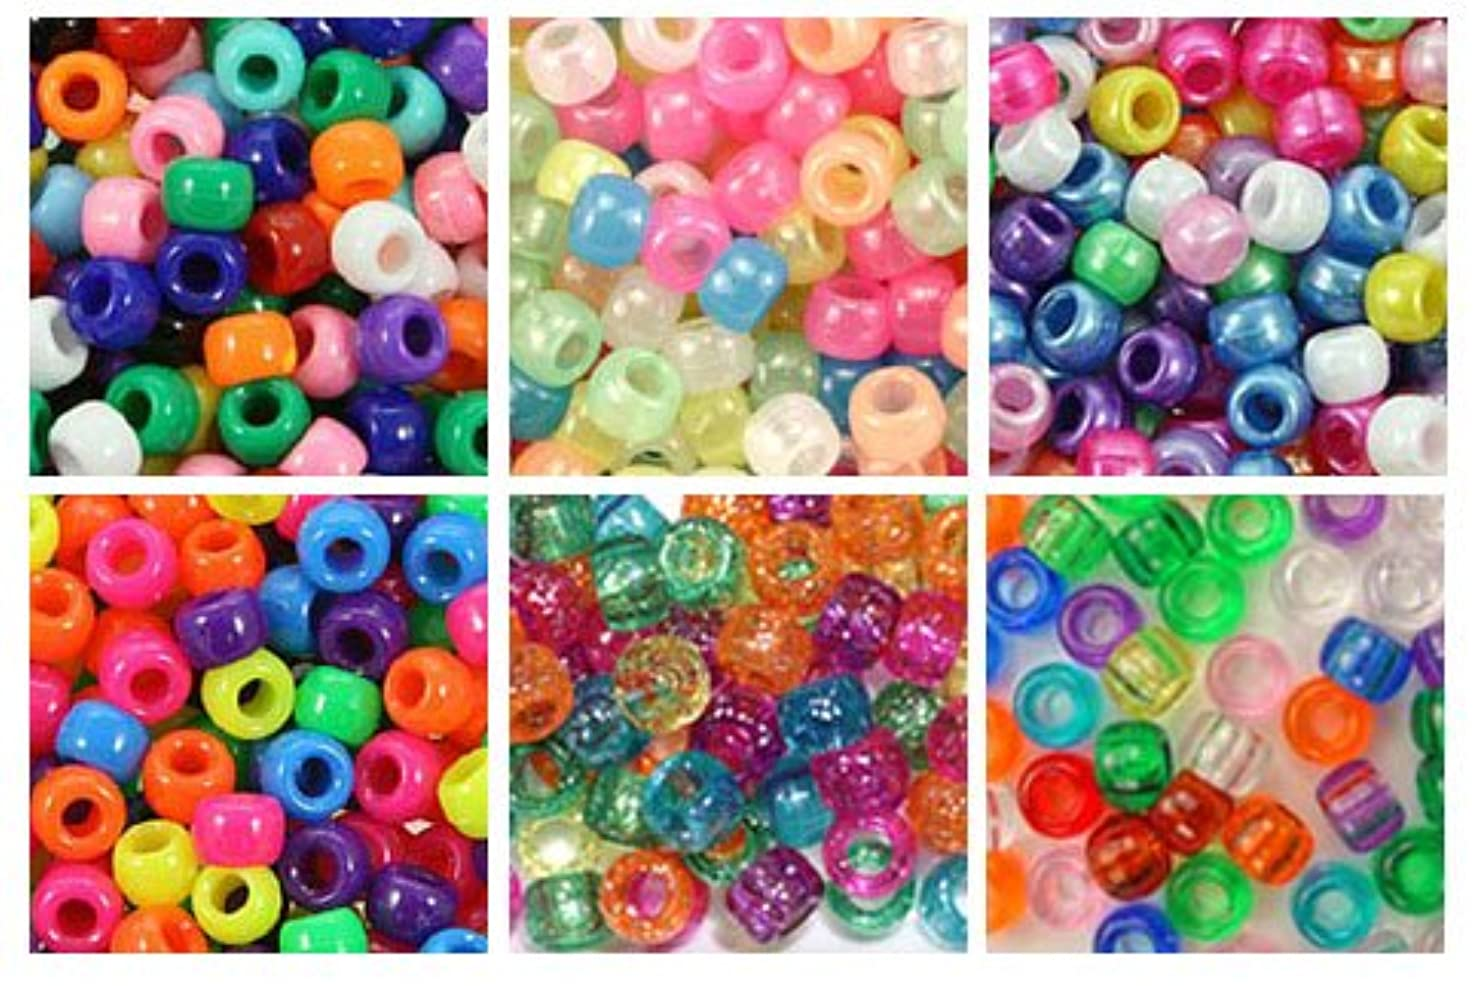 Multi Color 6 x 9mm Plastic Craft Pony Beads, 6 Bags Variety Pack (About 3000 Beads), Beads Kit Gift Set